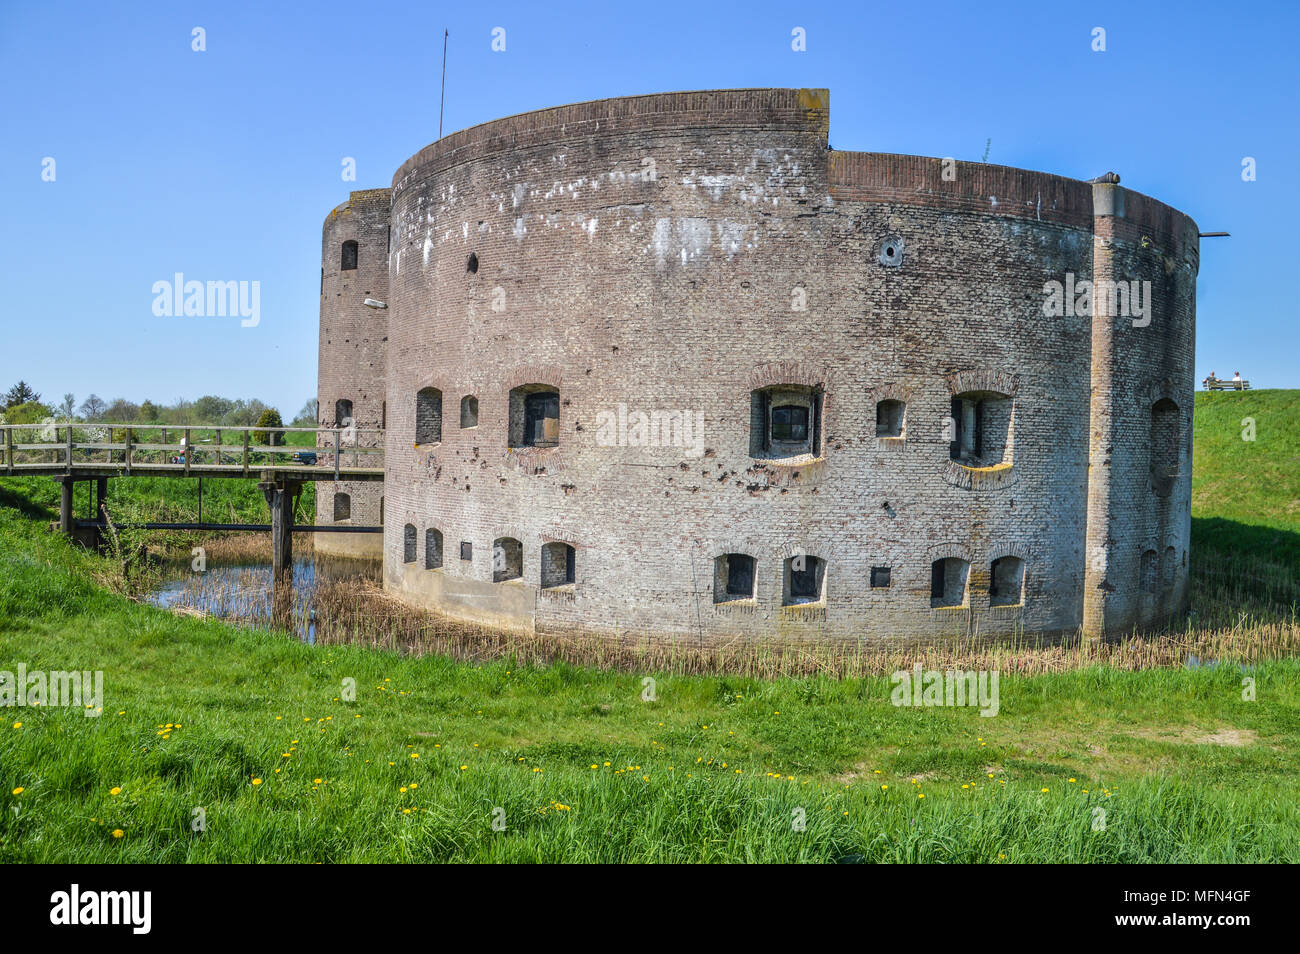 Scouting Building At Muiden The Netherlands - Stock Image